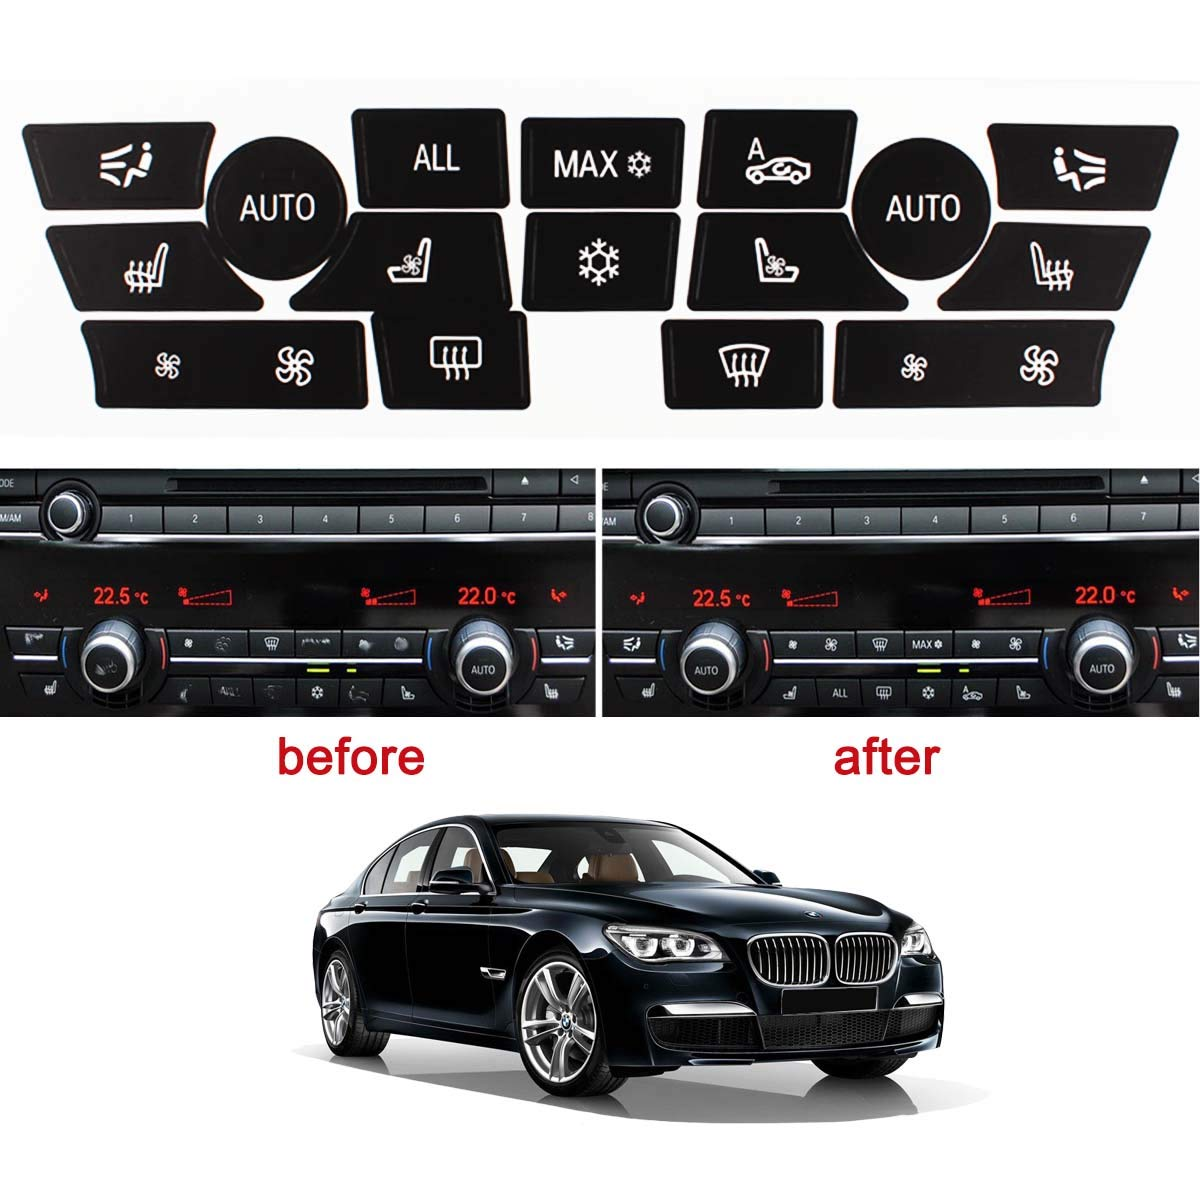 TOMALL AC Control Button Repair Stickers Kit for 2009-2014 BMW 7 Series F01 F02 Replacement Ruined Faded Buttons